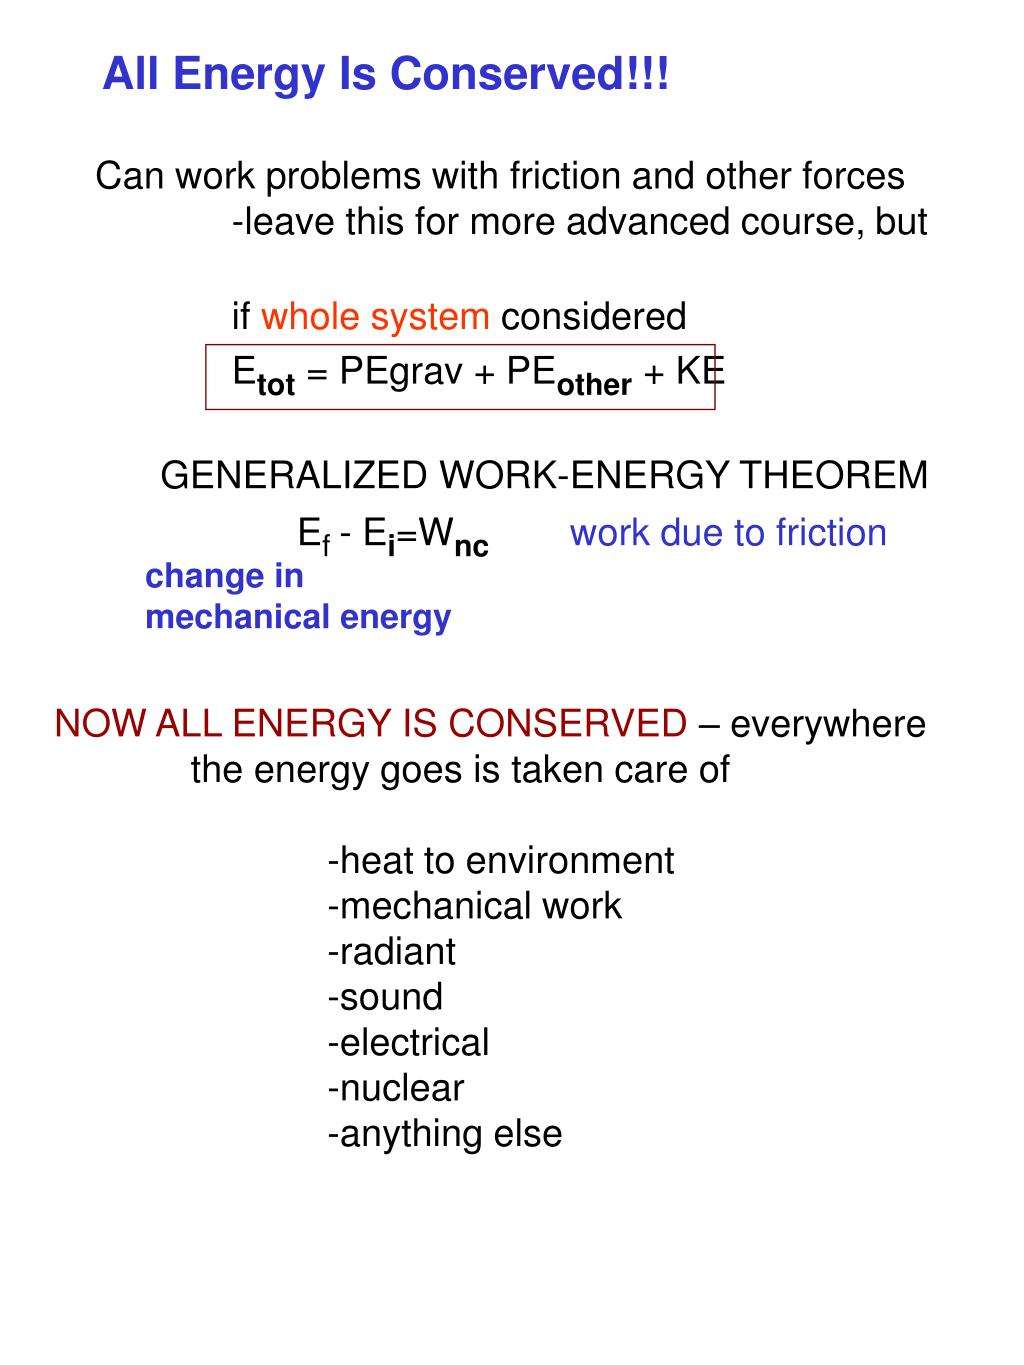 All Energy Is Conserved!!!